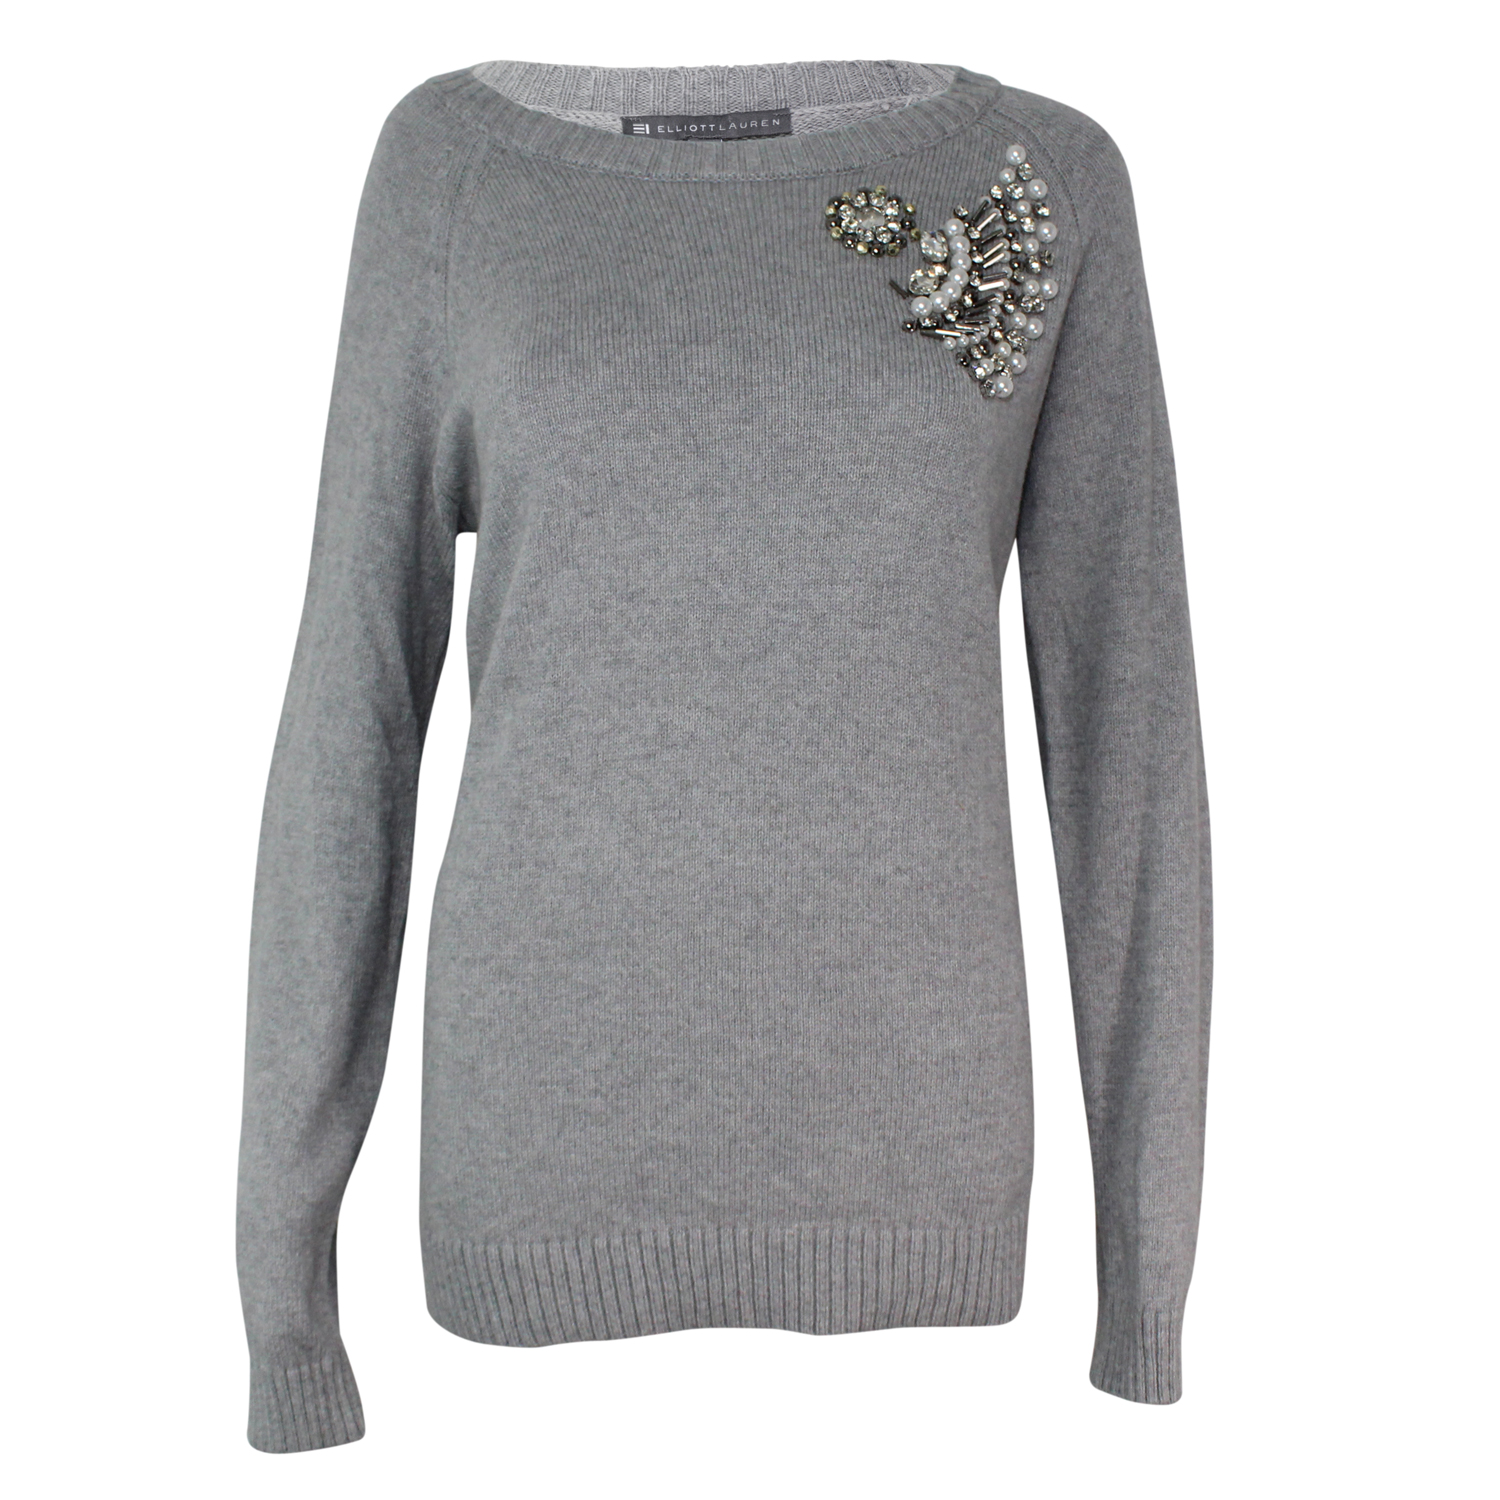 Elliott Lauren New Razzle Sweater Grey Medium